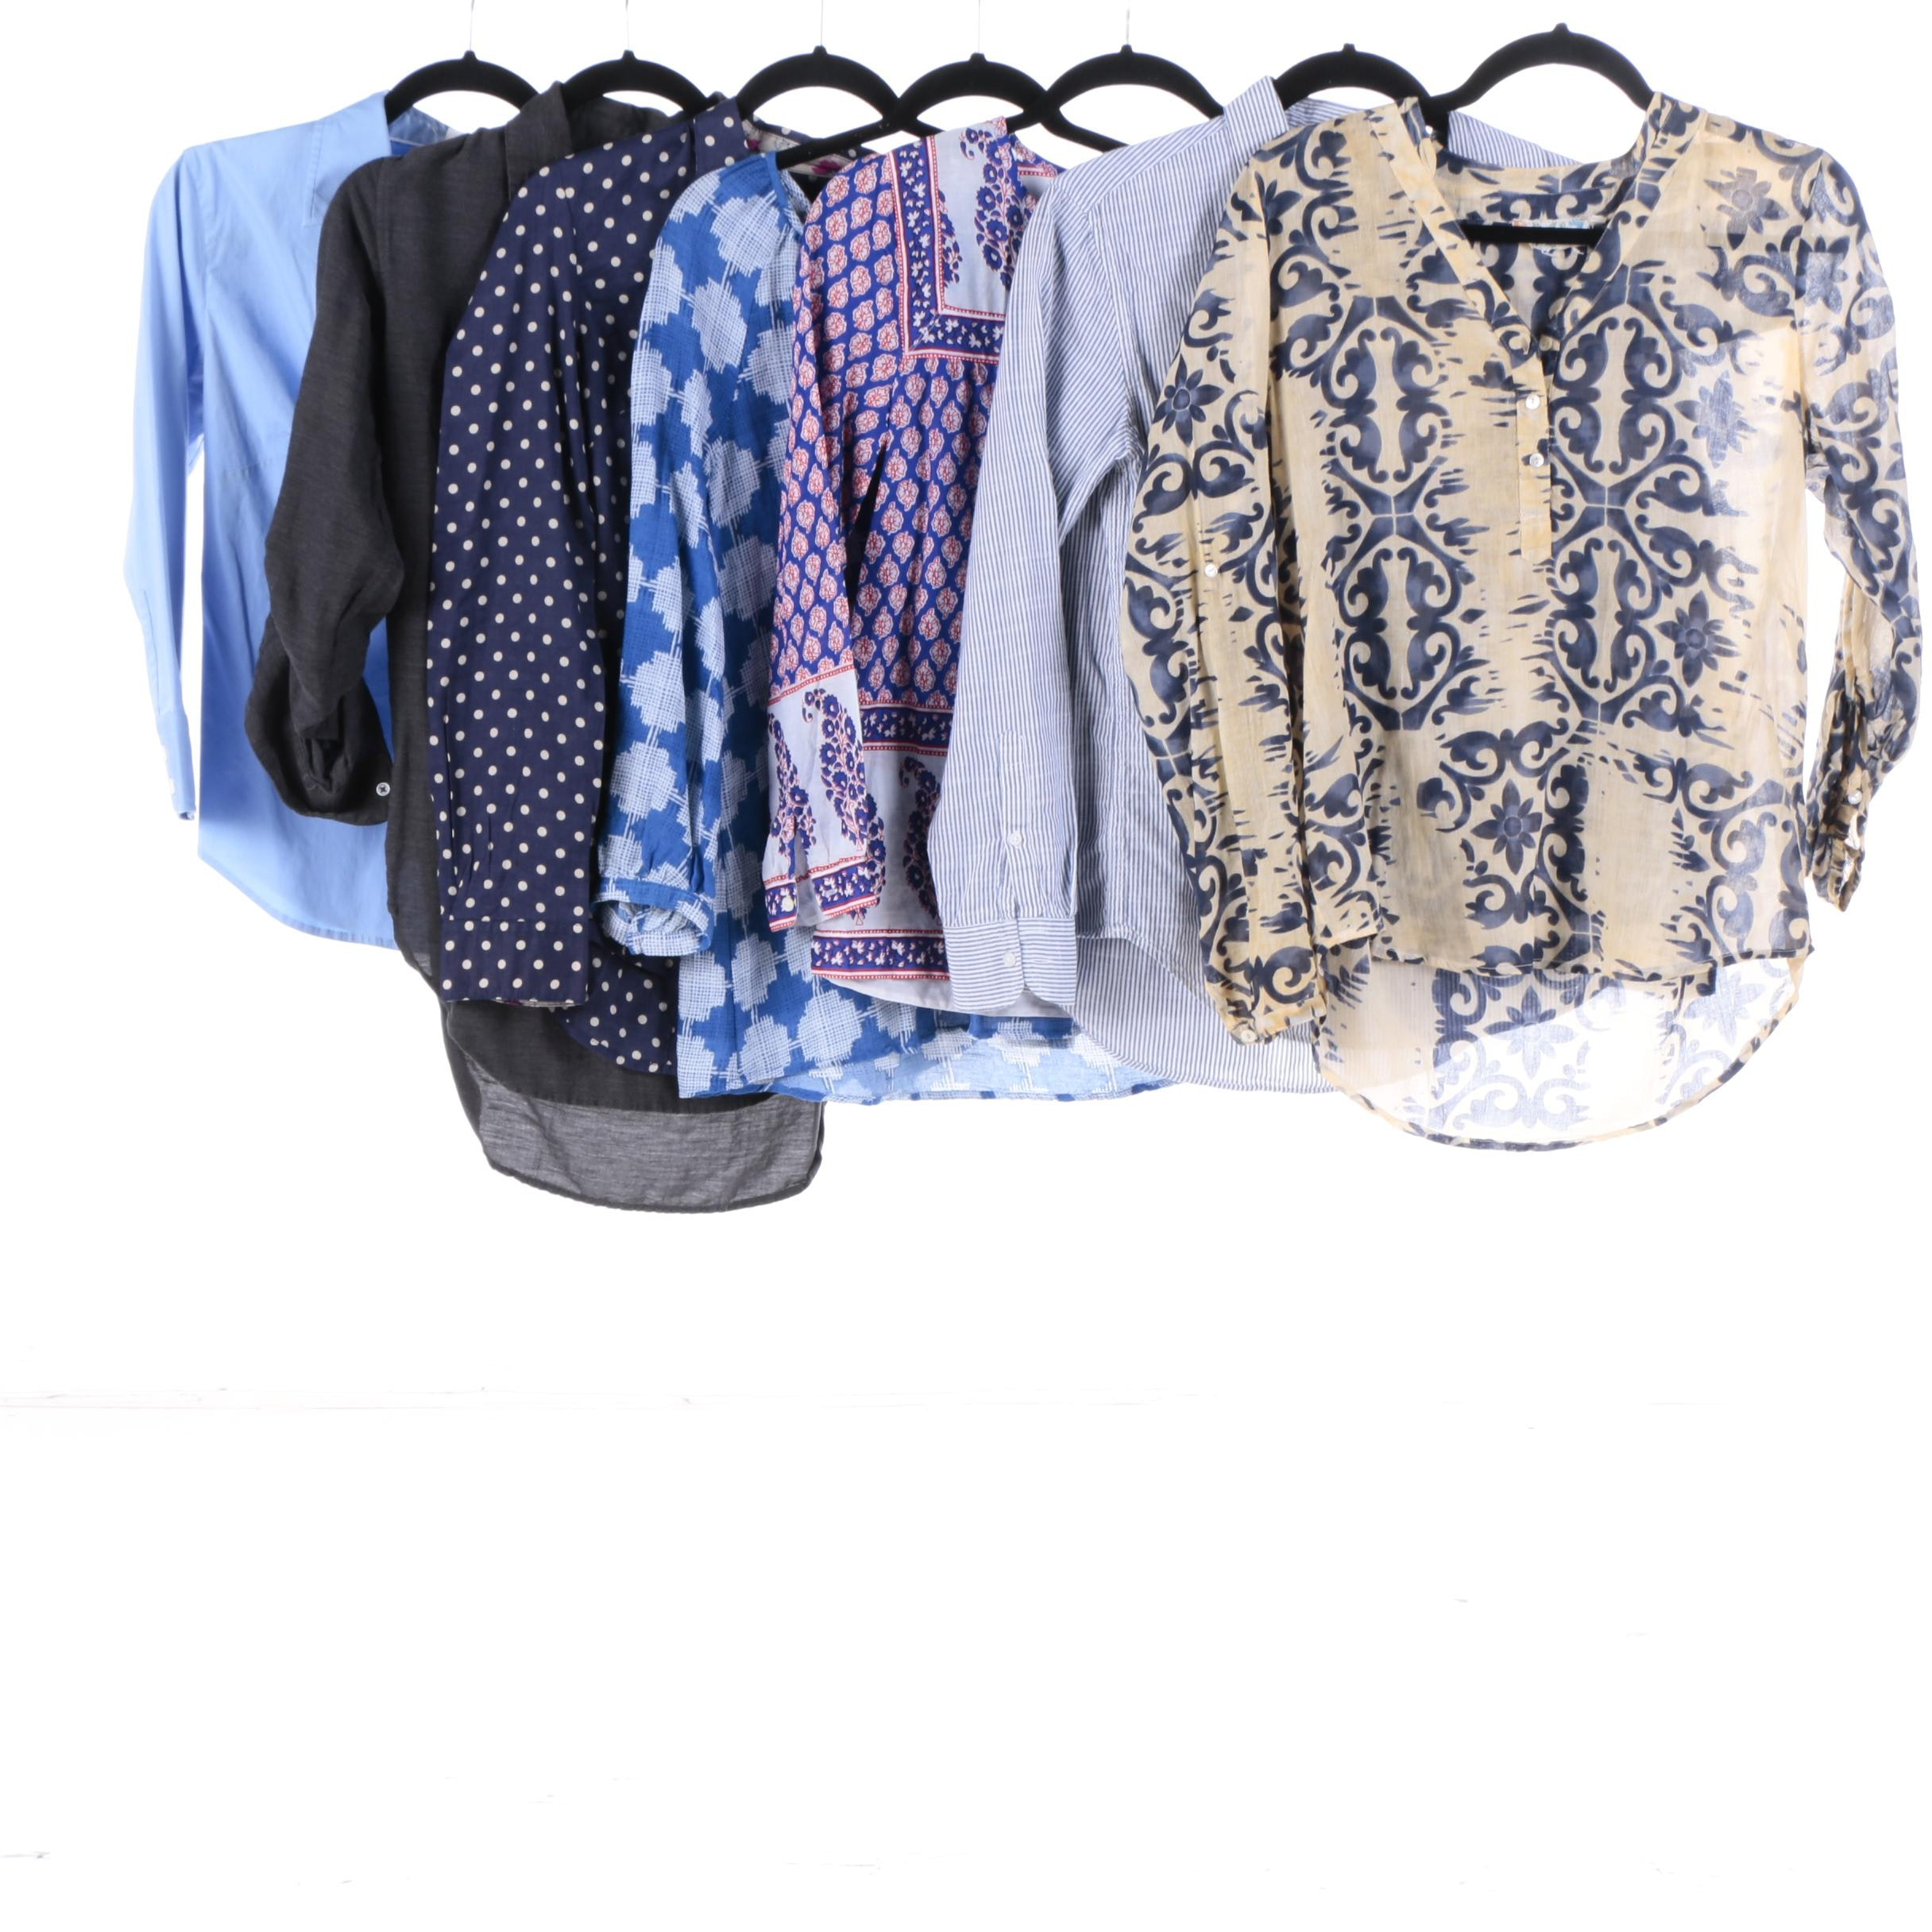 Women's Shirts in Prints and Solids Featuring J. Crew, Gap, Dolma